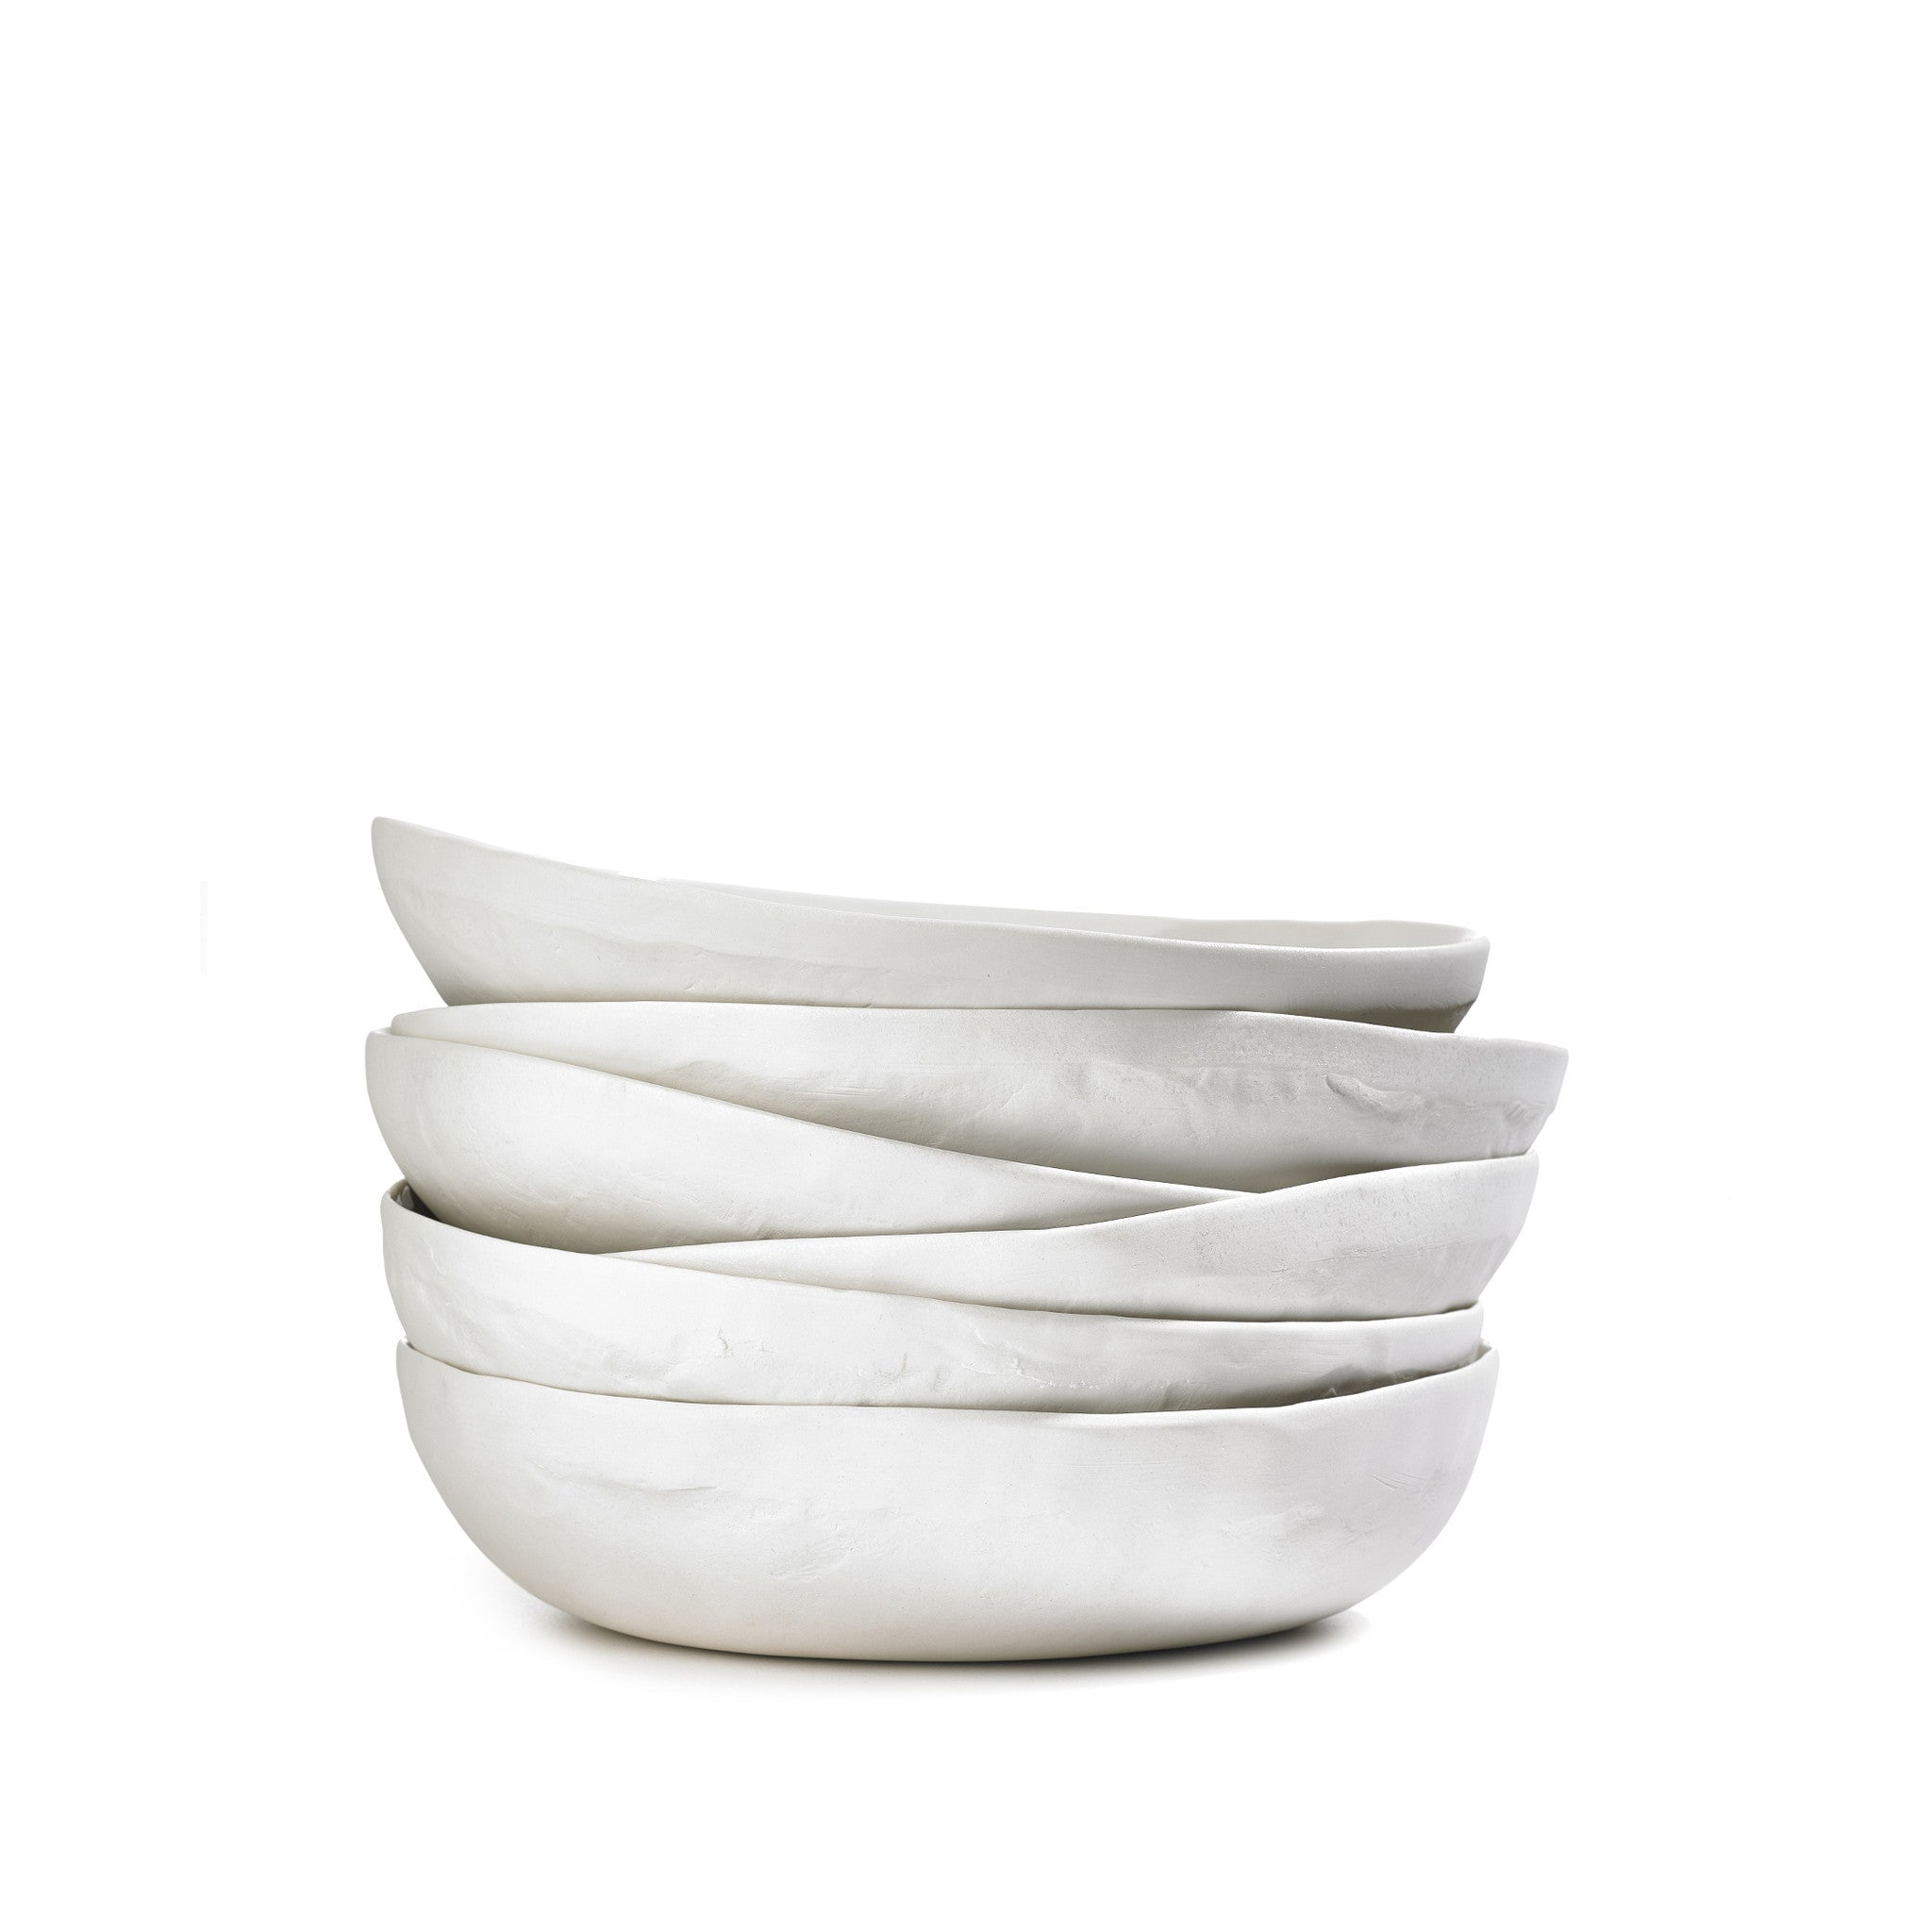 S&B Handmade 23cm Porcelain Soup Bowl with Plain Rim